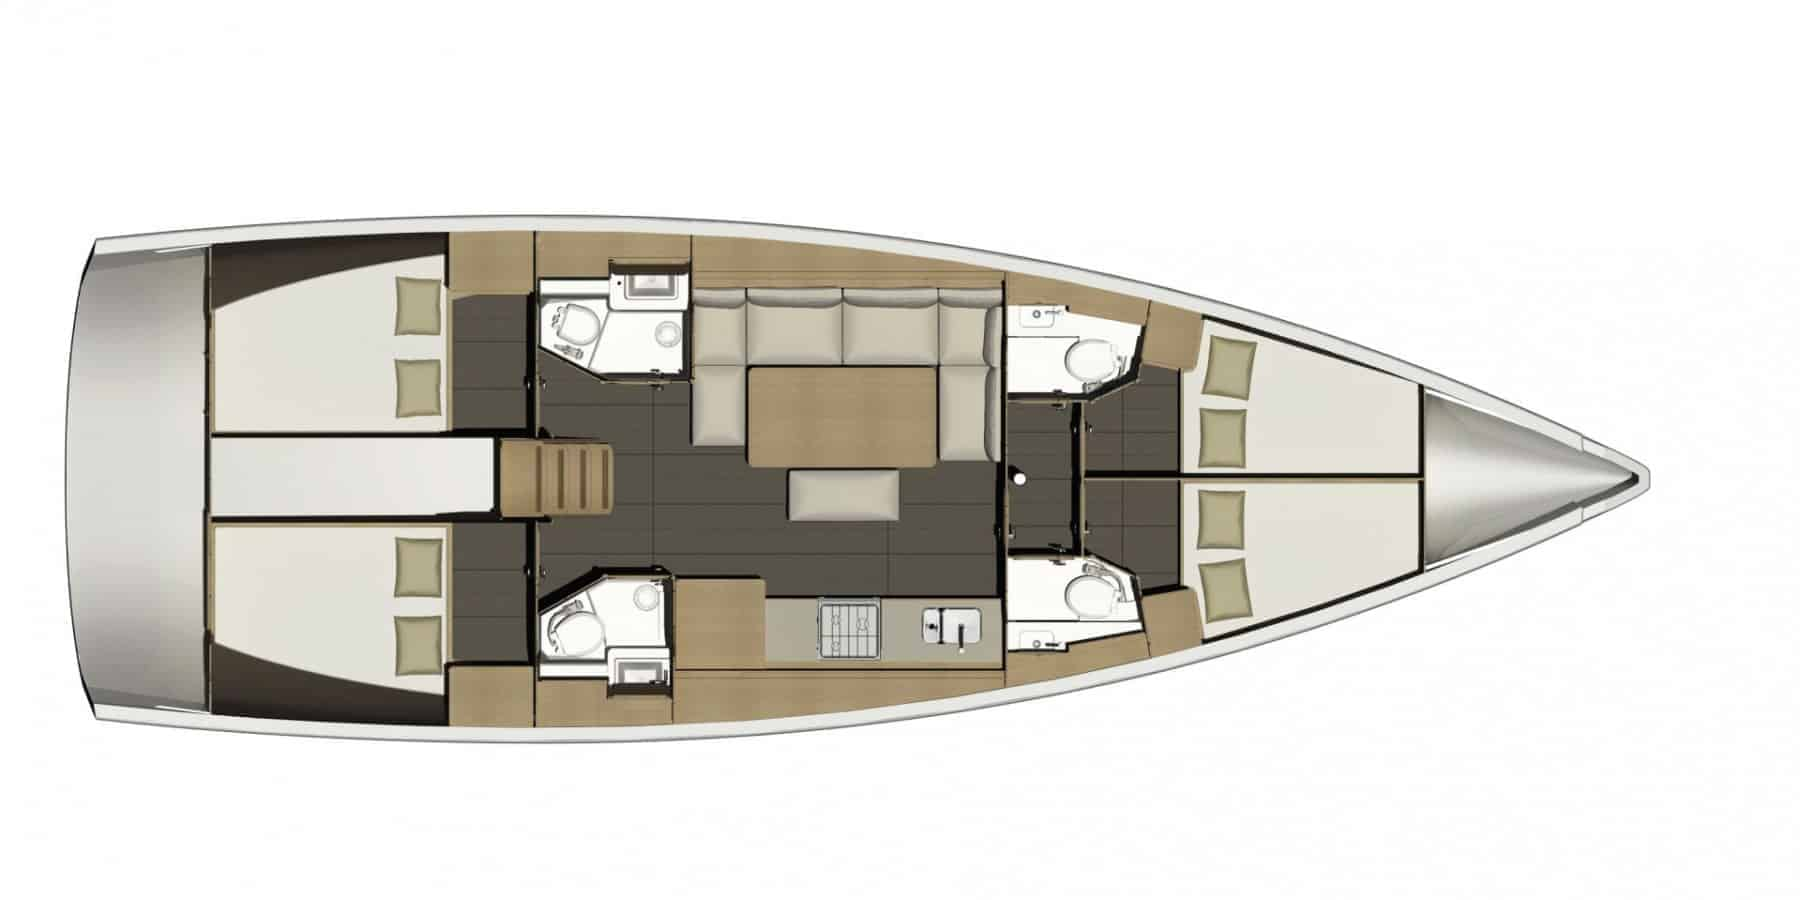 Layout from above of the Dufour GL 460, showing cabins, saloon, galley and head